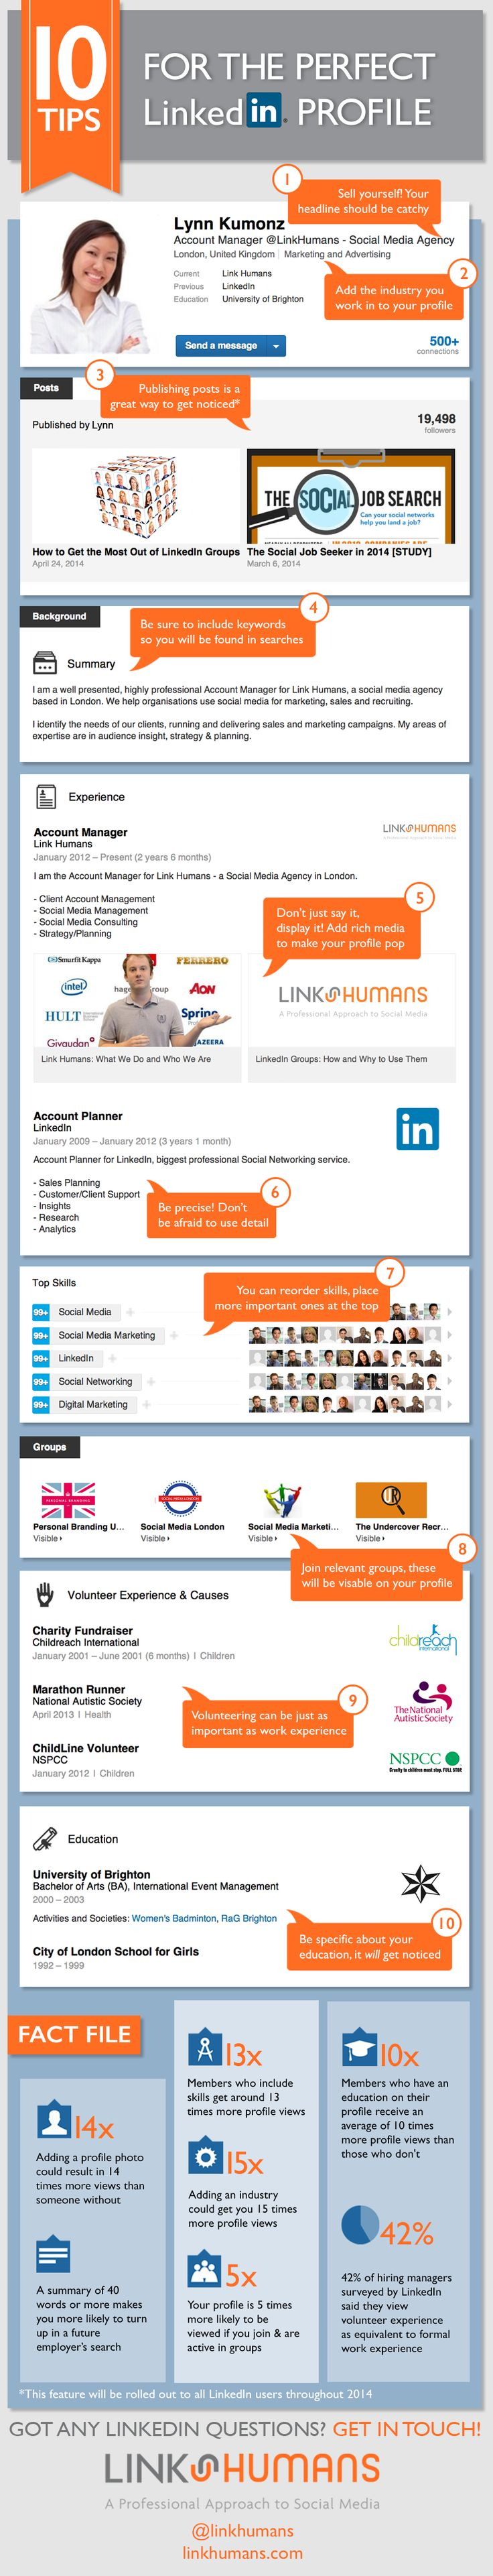 How To Optimize Your LinkedIn Profile So Recruiters Come To You. Infographic from British social media consultancy LinkHumans.